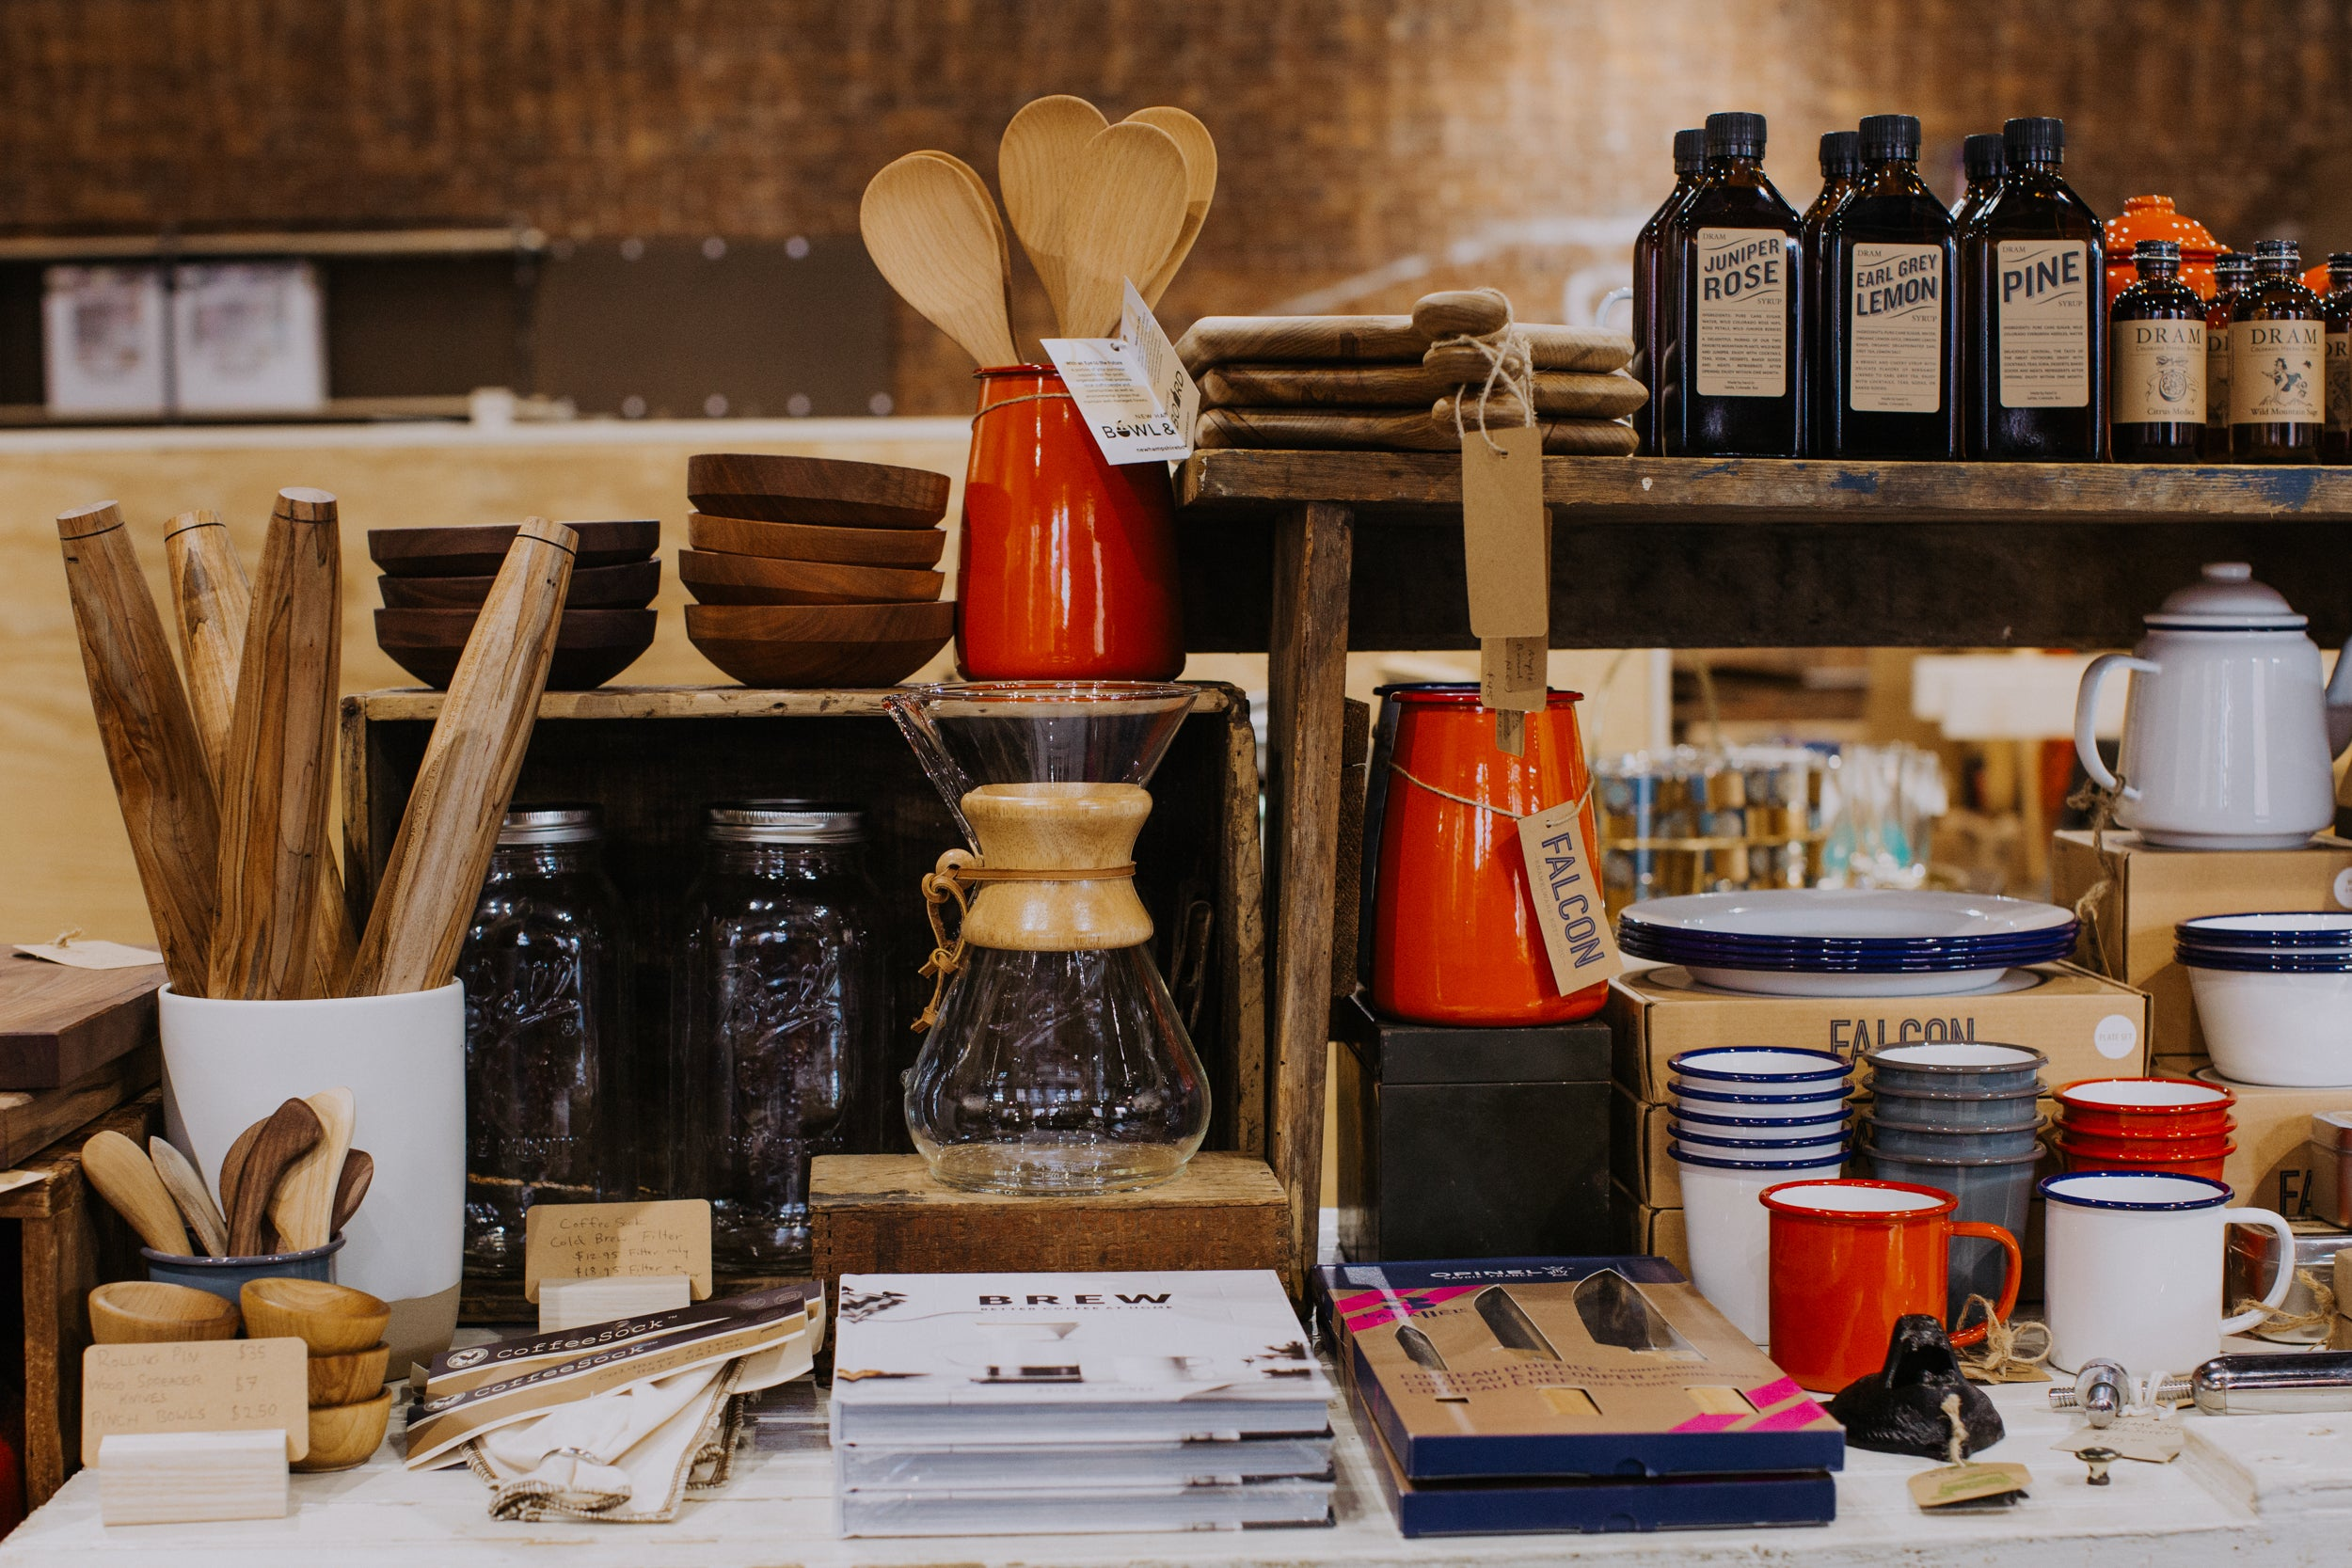 Lineage Store Kitchen Wares